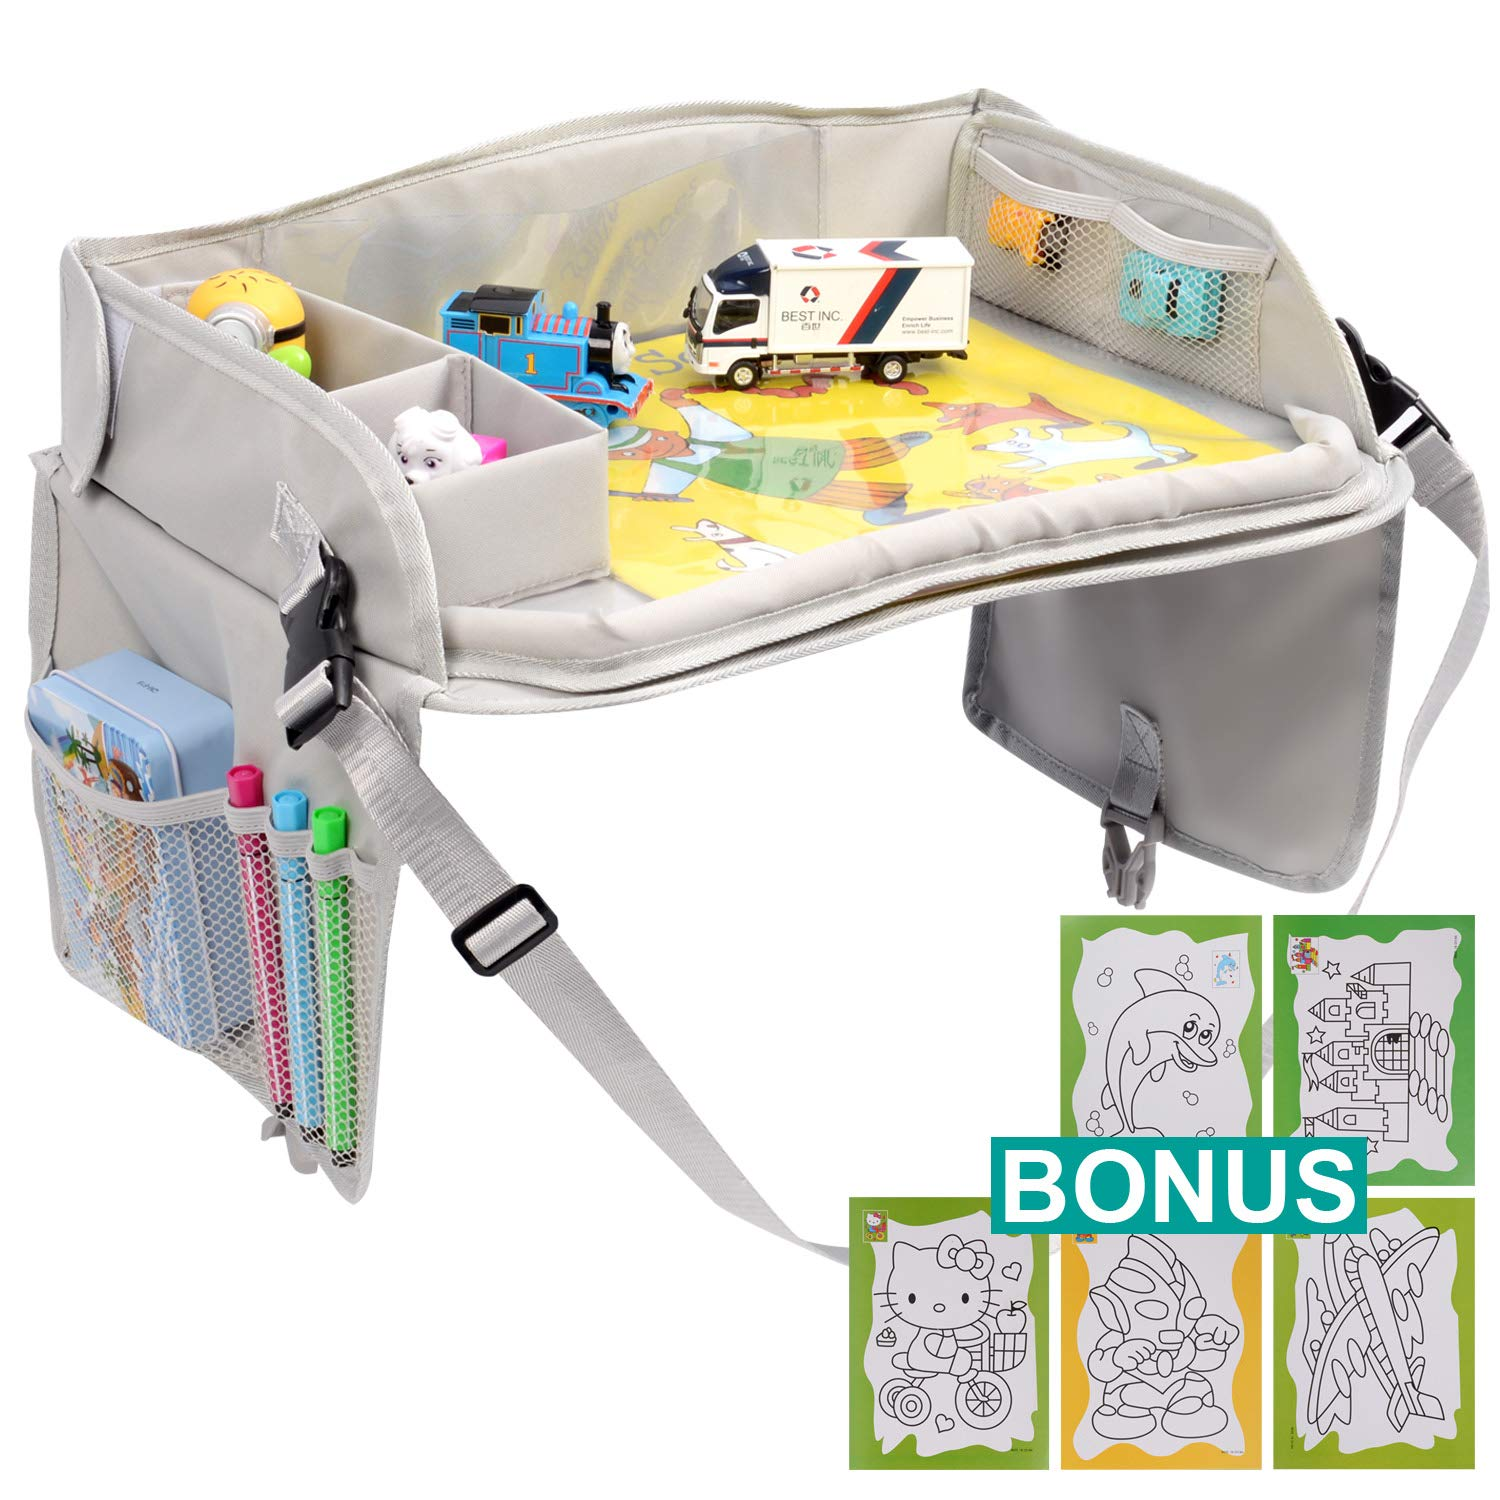 YOUMILE Car Kids Travel Lap Tray, Children Car Seat Activity Snack and Toddler Car Tray with PVC Erasable Surface, iPad & Tablet Holder, Detachable Organizers for Cars, Airplanes & Baby Stroller by YOUMILE